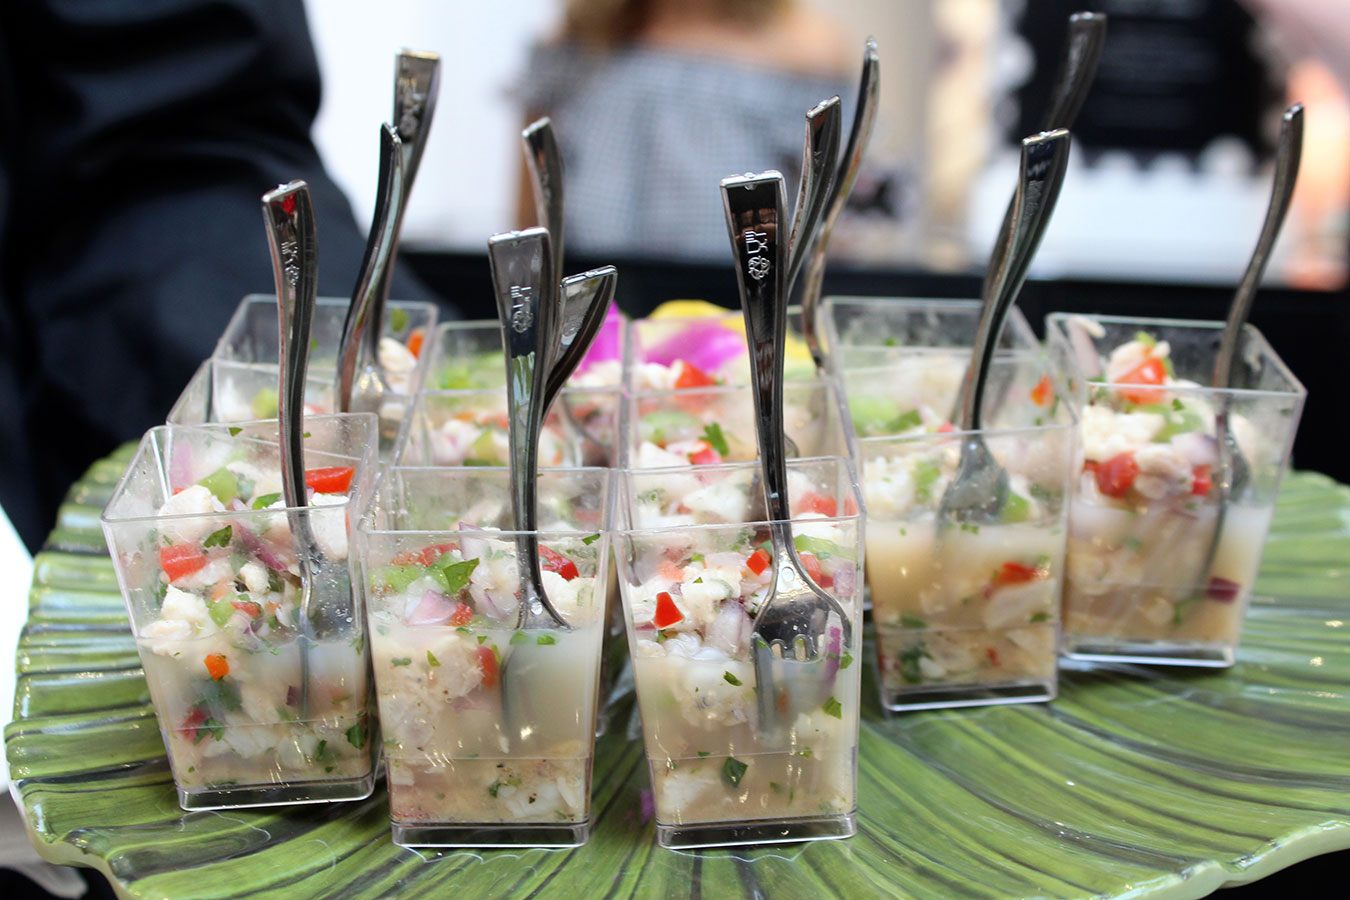 Ceviche with cilantro, habanero and lime was served at the GUESS Lincoln Road store A Bikini A Day event